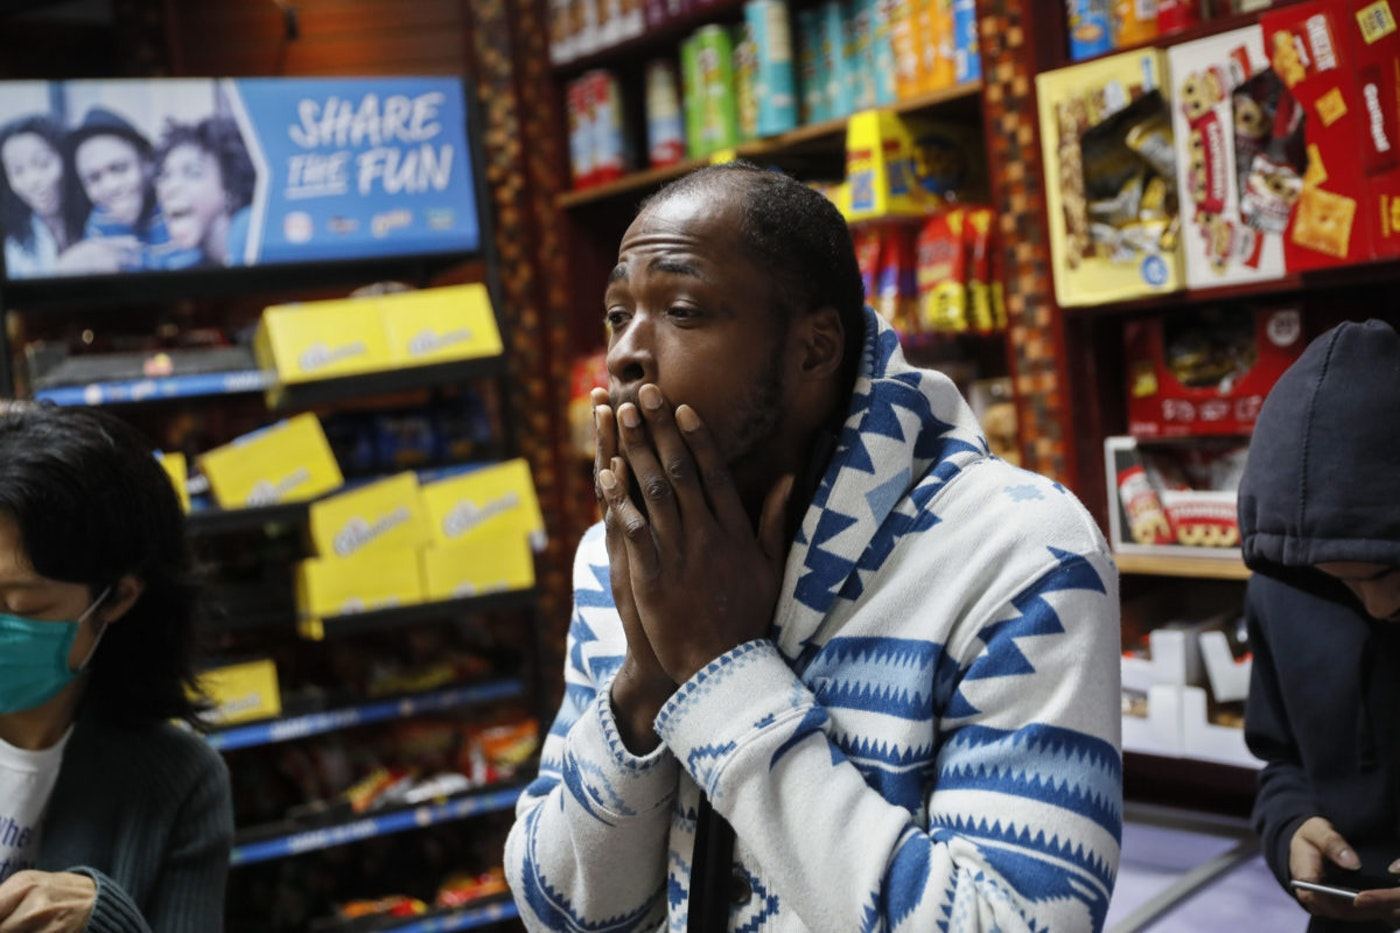 Brandon B., 32, who lives with schizophrenia waits for a sandwich order purchased by Dr. Jeanie Tse, chief medical officer at the Institute for Community Living, left, as she makes her rounds treating patients, Wednesday, May 6, 2020, in the Brooklyn borough of New York. (AP Photo/John Minchillo)